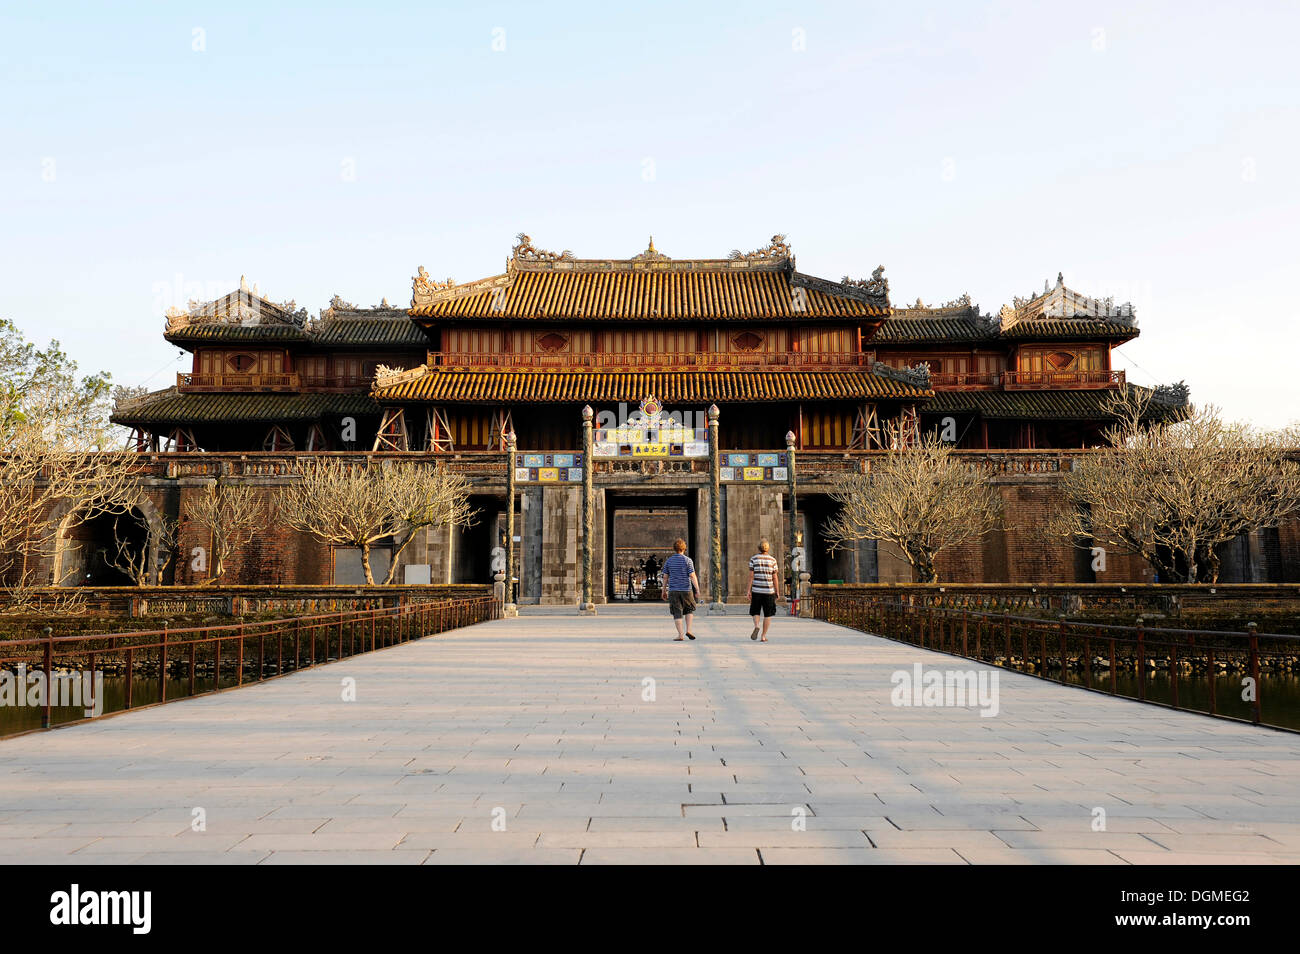 Hoang Thanh Royal Citadel, Ngo Mon Gate, view from the inside with Trung Dao Bridge, Hue, North Vietnam, Vietnam, Southeast Asia - Stock Image